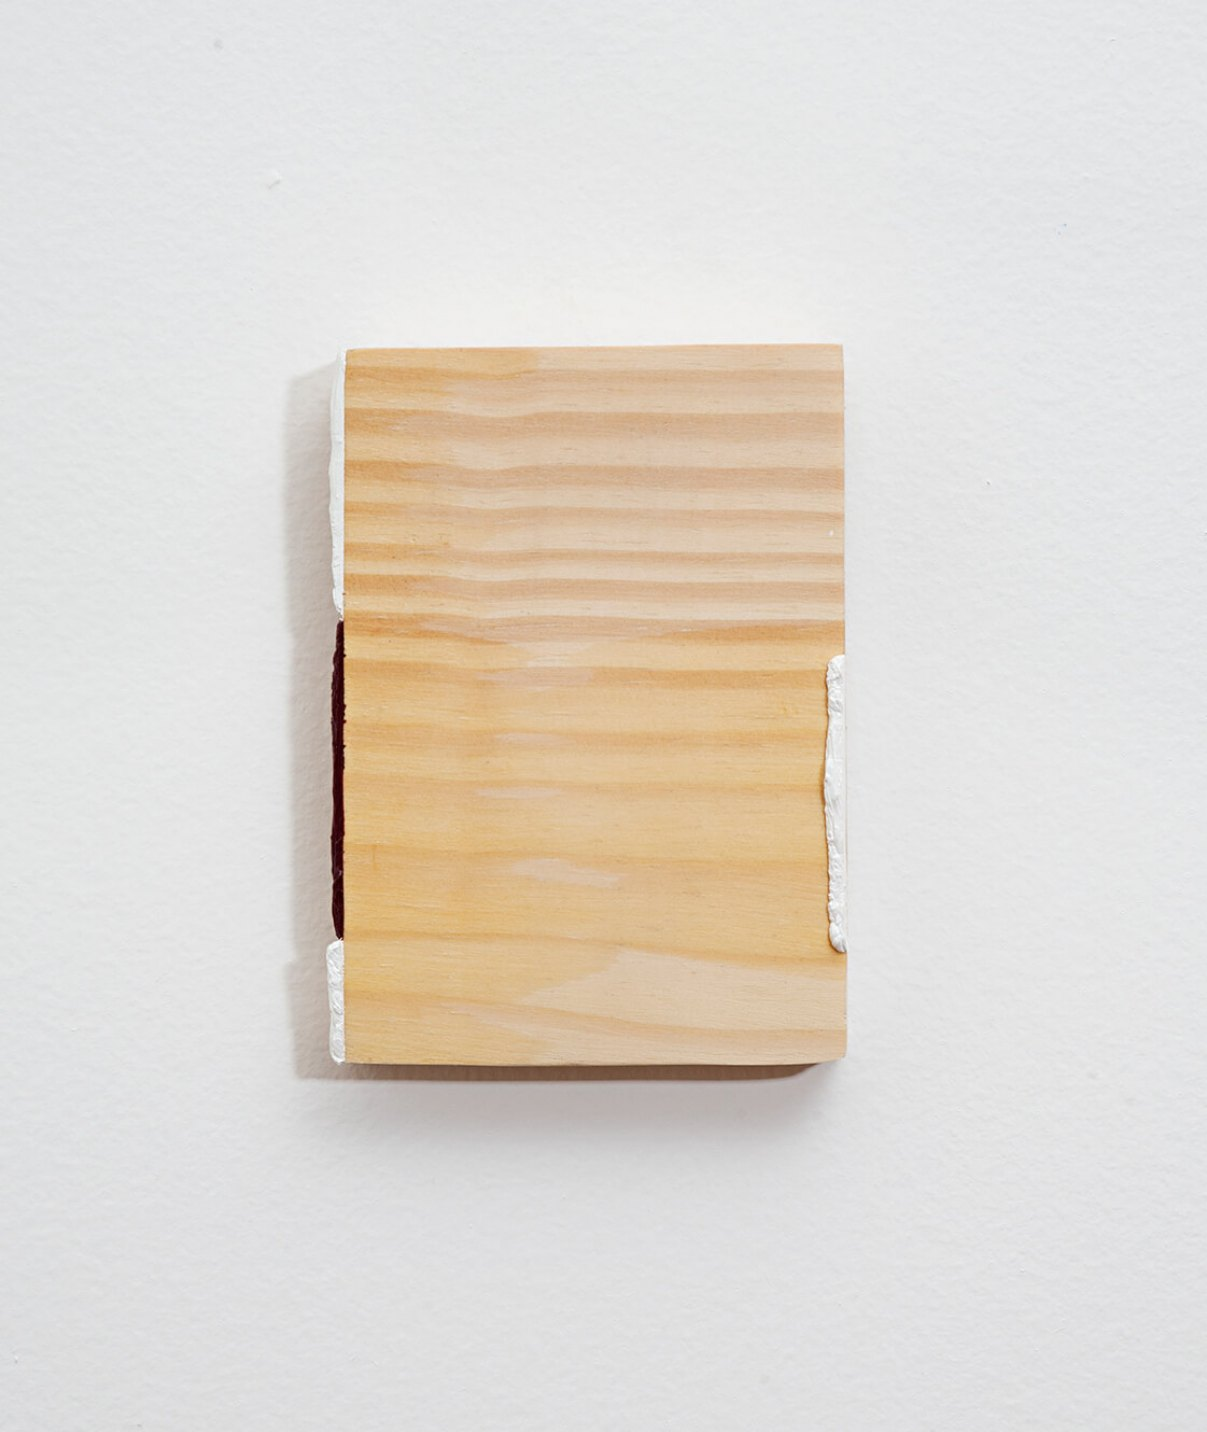 Paulo Monteiro,<i> untitled</i>, 2013, oil on wood, 15 × 10 cm - Mendes Wood DM